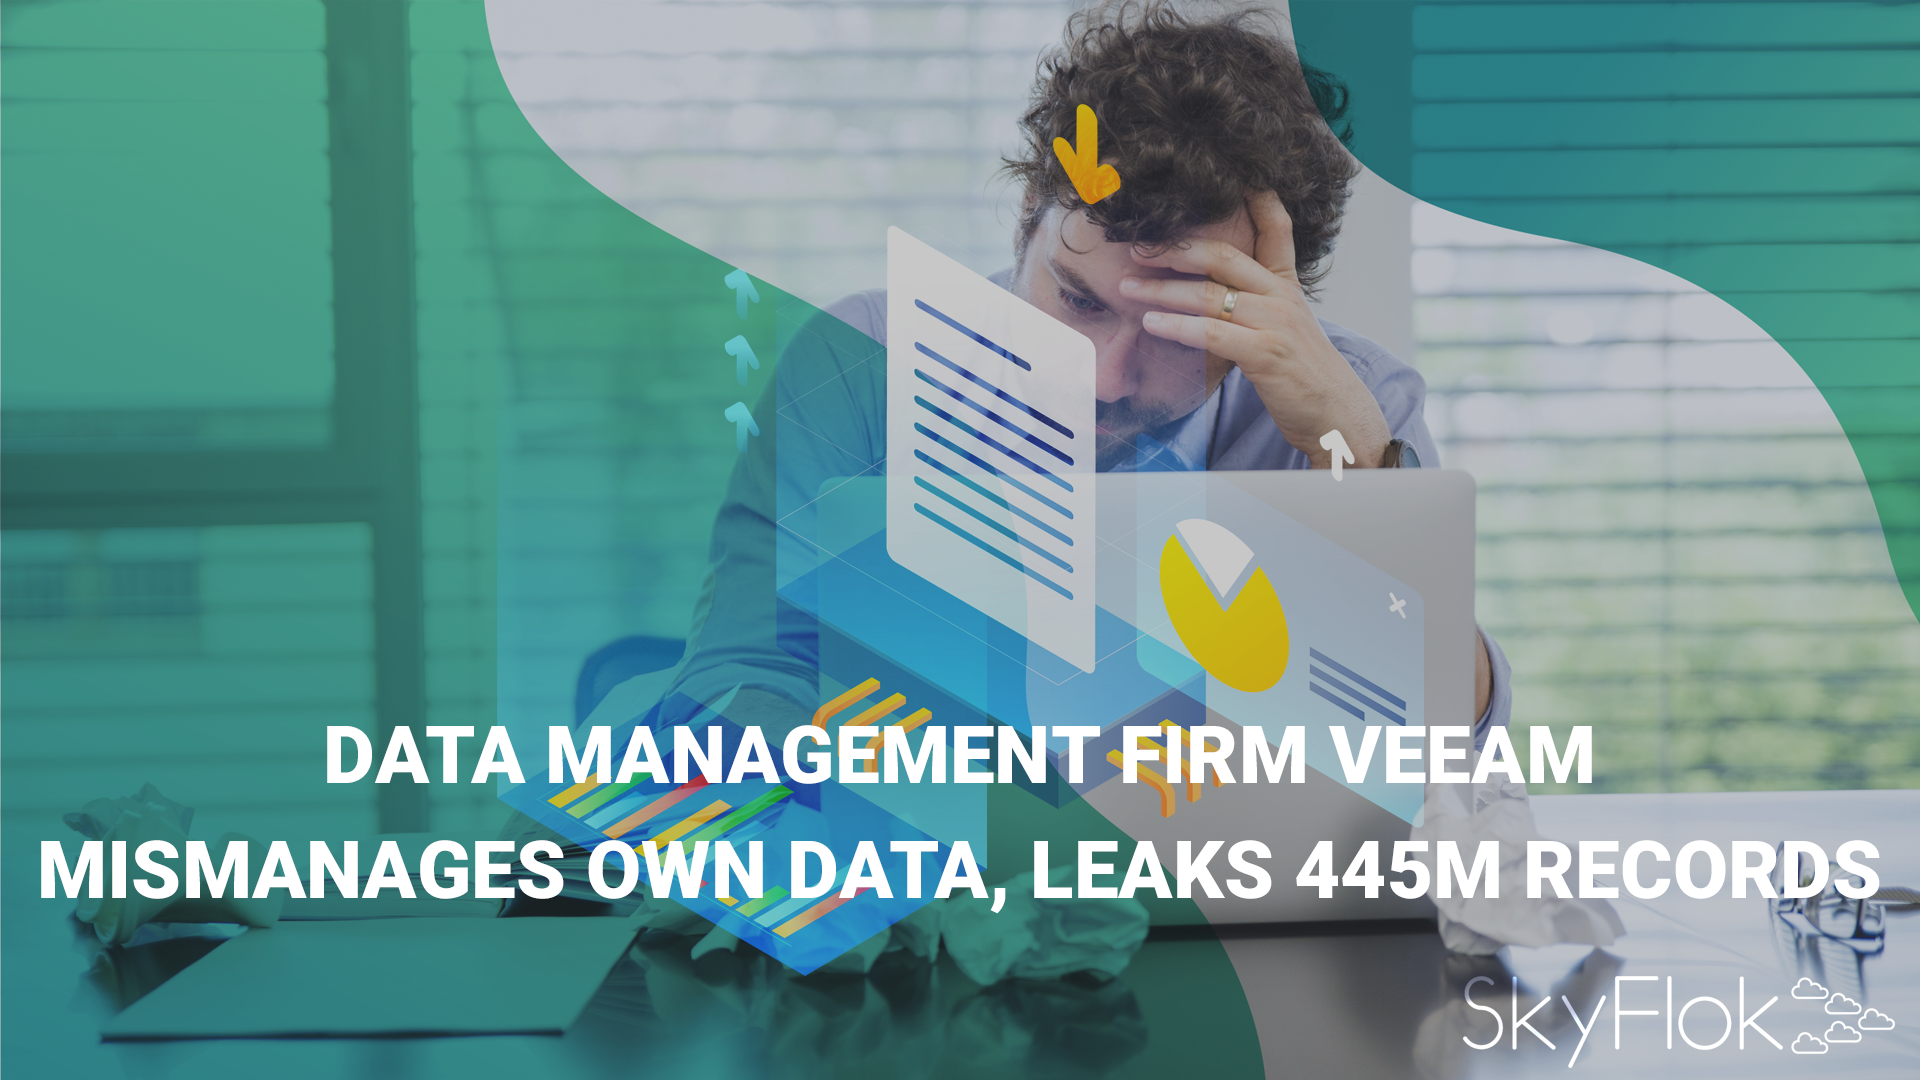 Data management firm Veeam mismanages own data, leaks 445m records